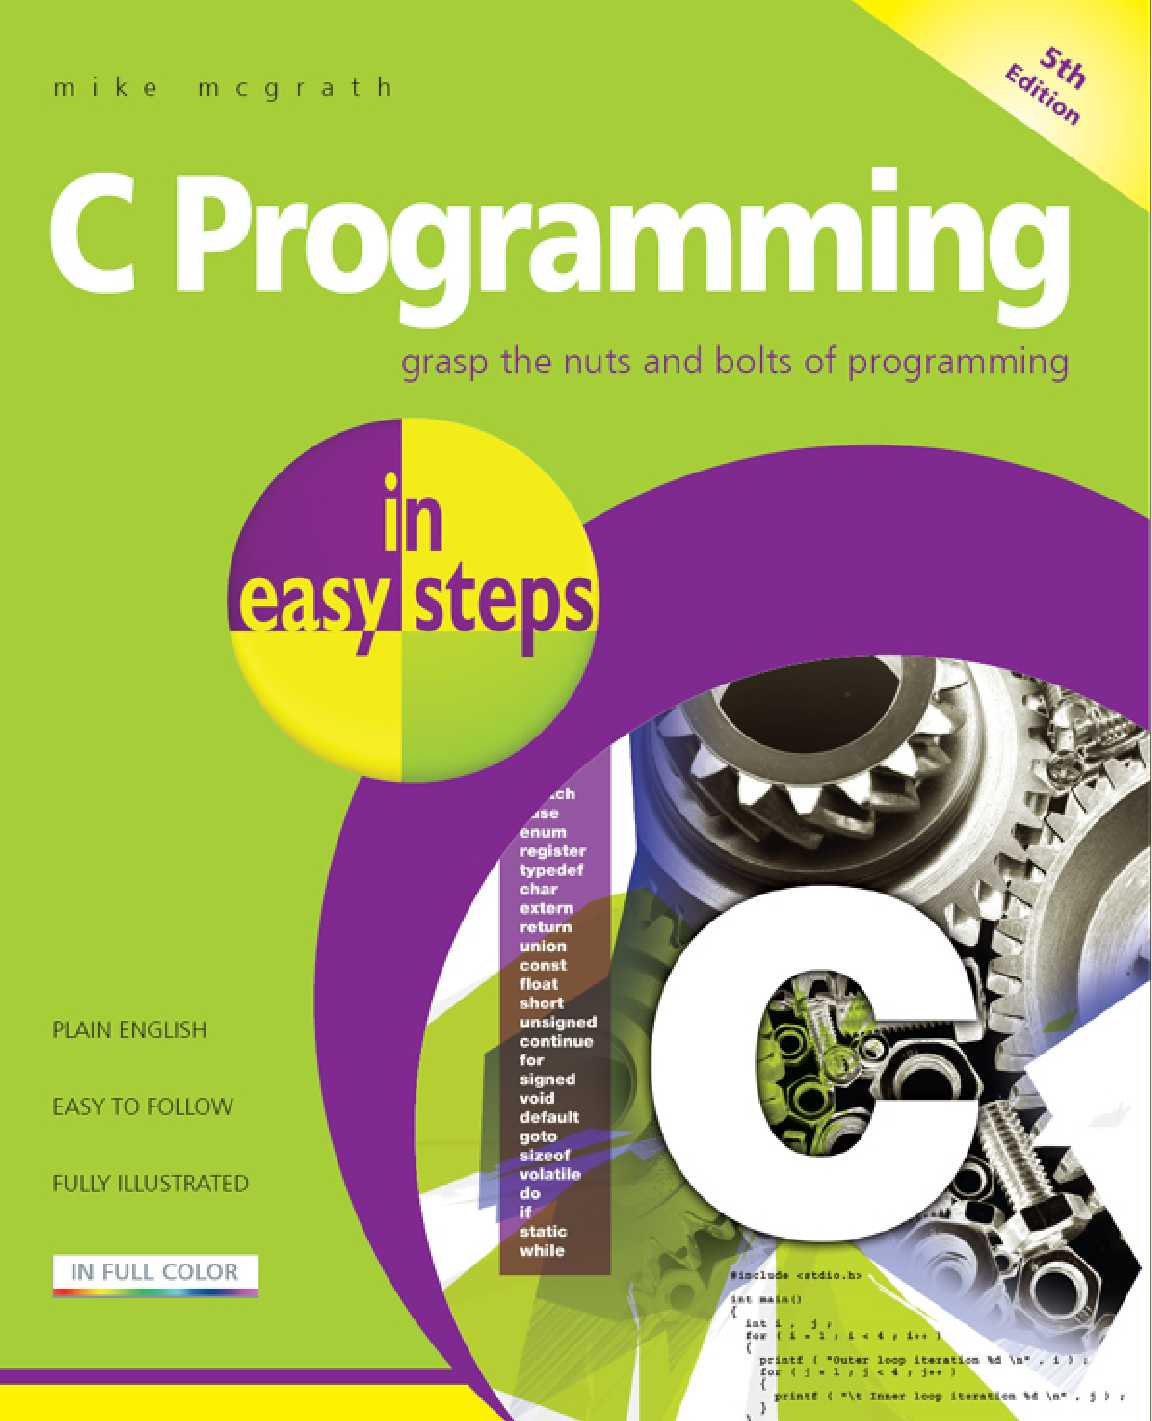 C Programming in easy steps: Updated for the GNU Compiler version 6.3.0 and Windows 10, 5th Edition